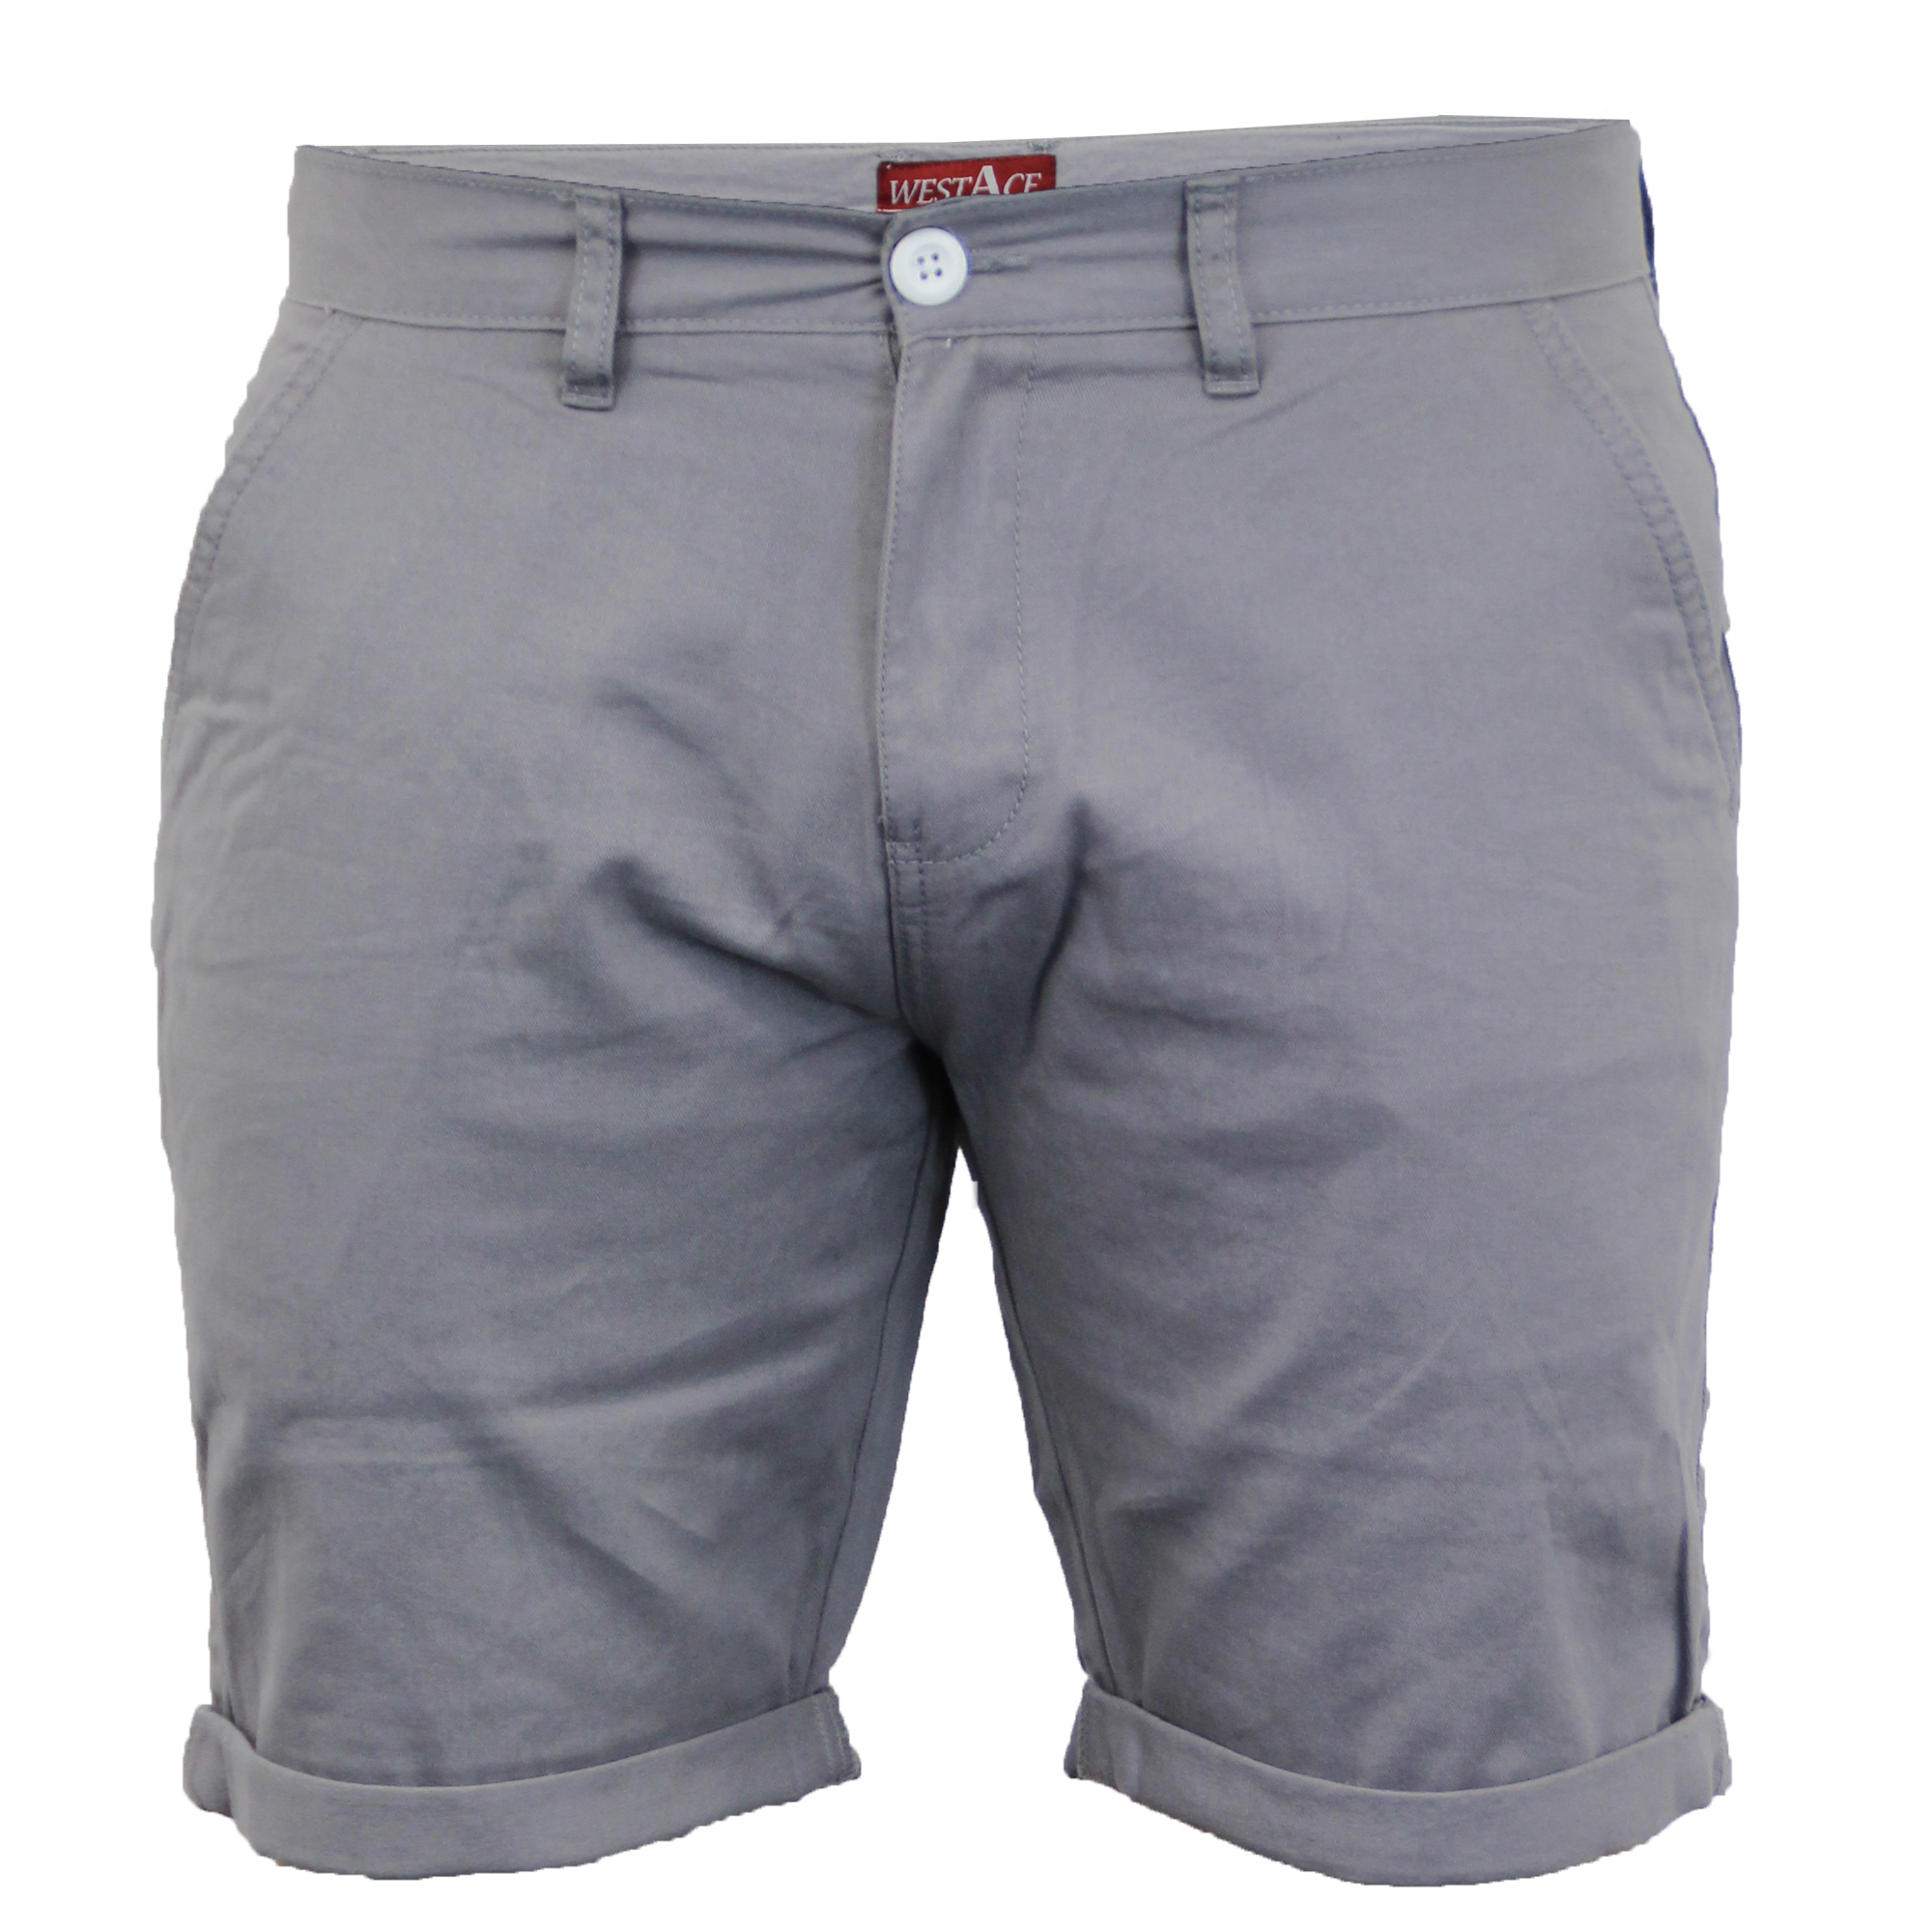 Mens-Chino-Shorts-Threadbare-Pants-Westace-Stallion-Knee-Length-Roll-Up-Summer thumbnail 19